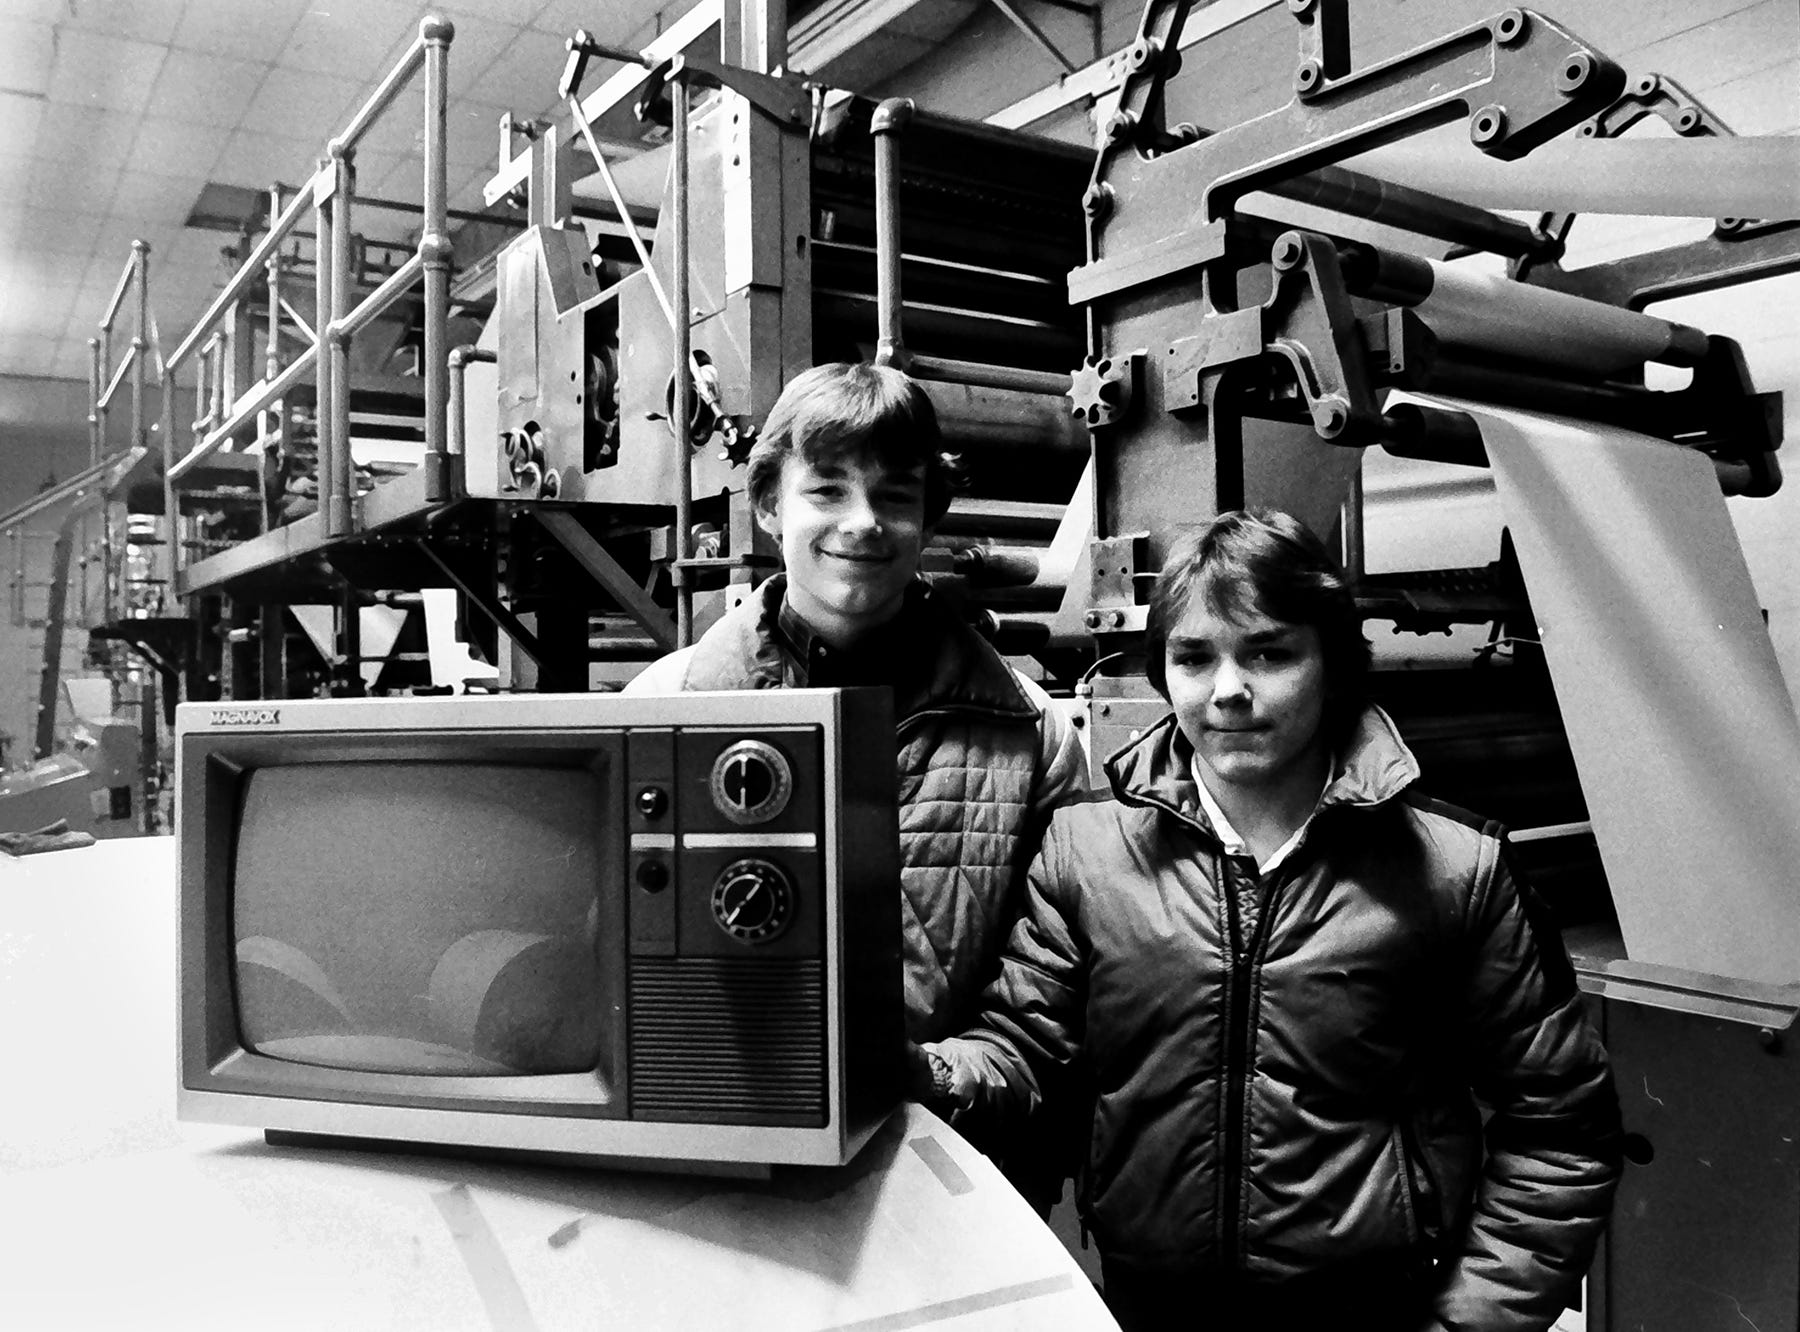 In 1985, two boys appear to be in the old Industrial Highway press room of the York Daily Record. Maybe they won a new Magnavox for deliveries?